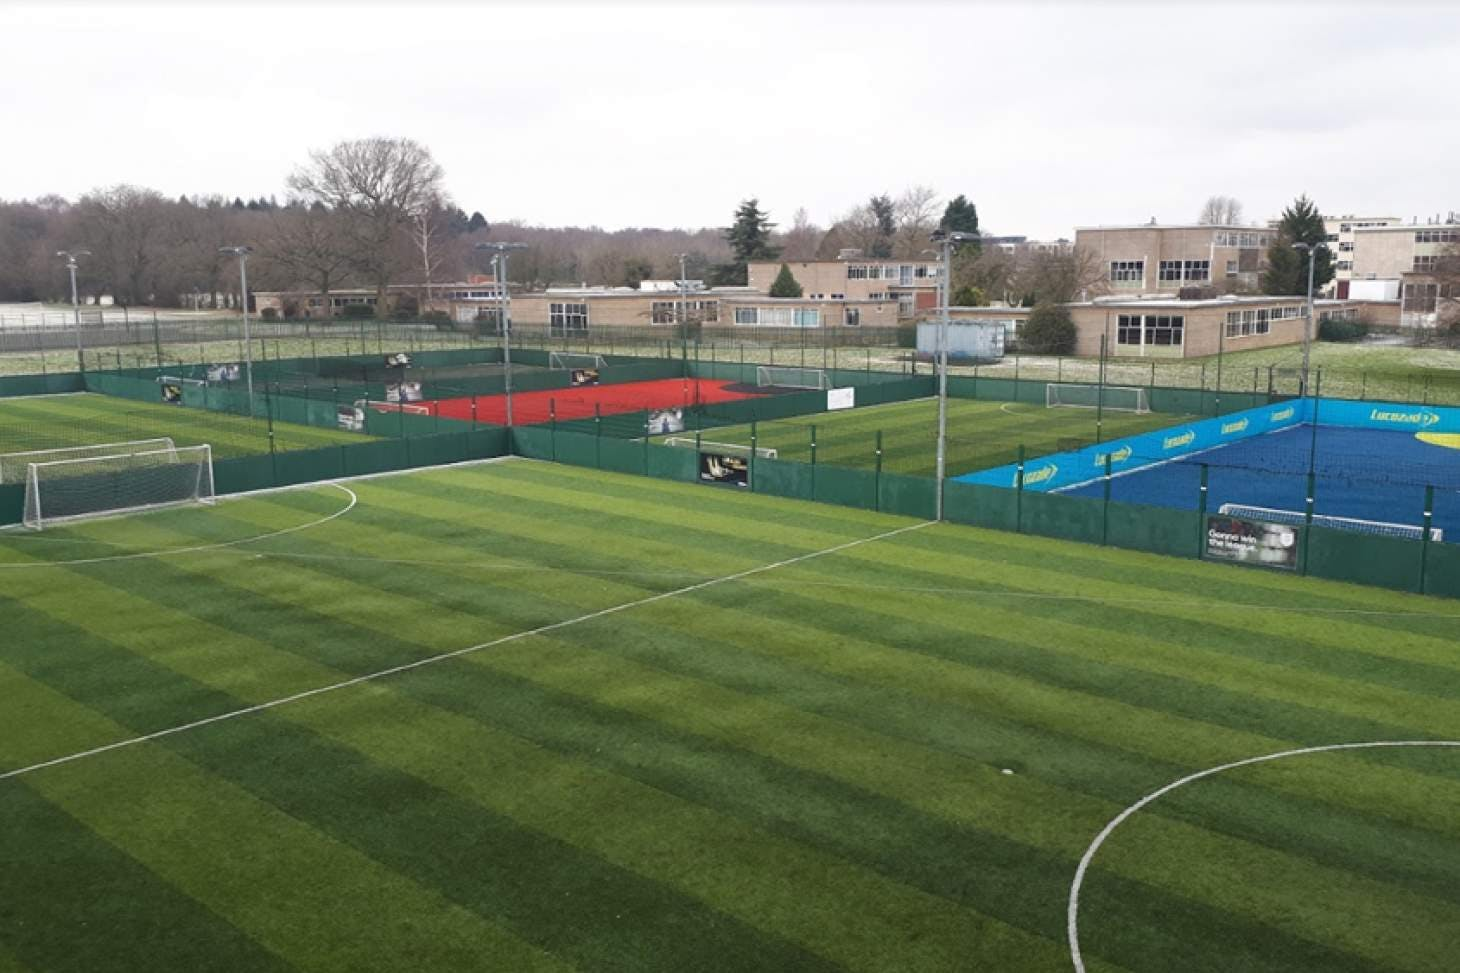 Powerleague Coventry 5 a side | 3G Astroturf football pitch